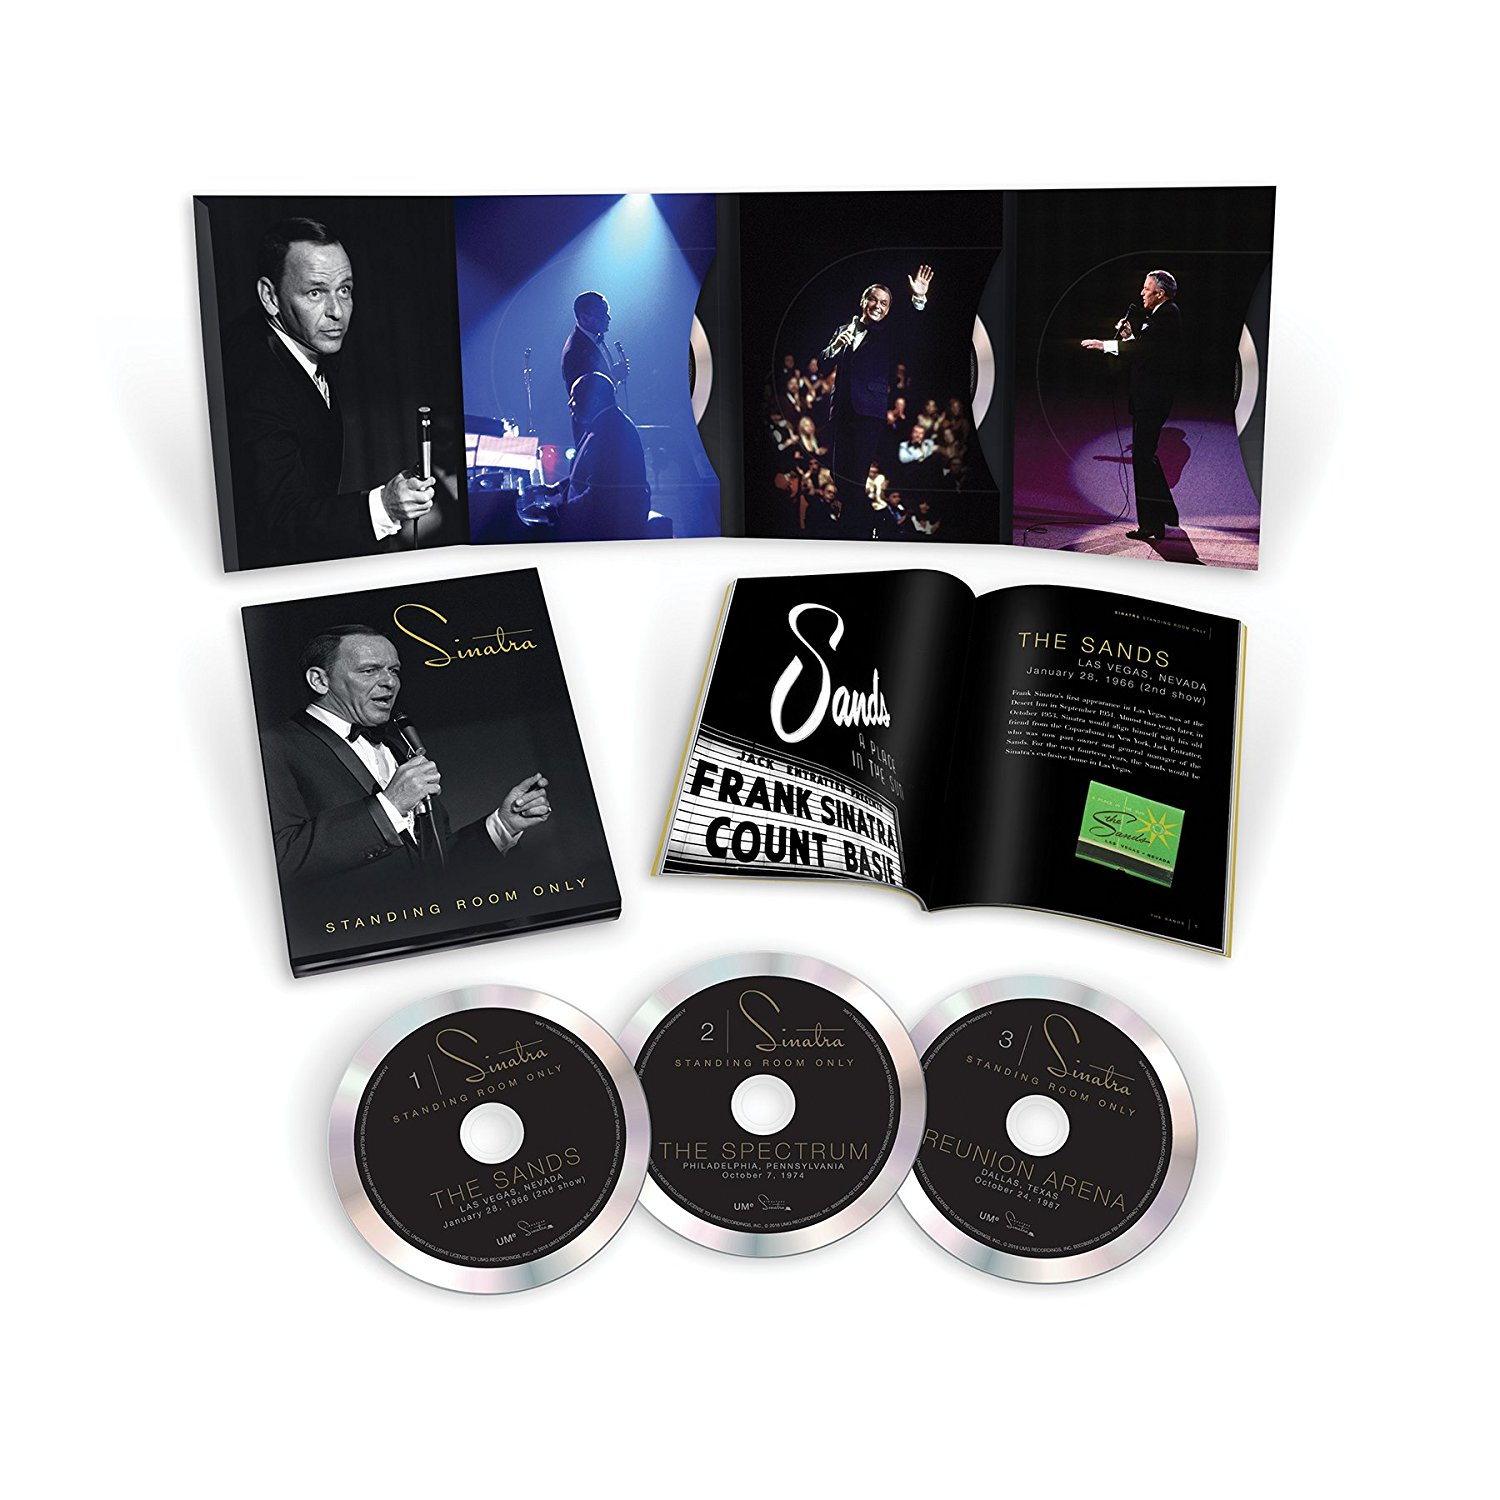 FRANK SINATRA - STANDING ROOM ONLY (3 CD) (CD)